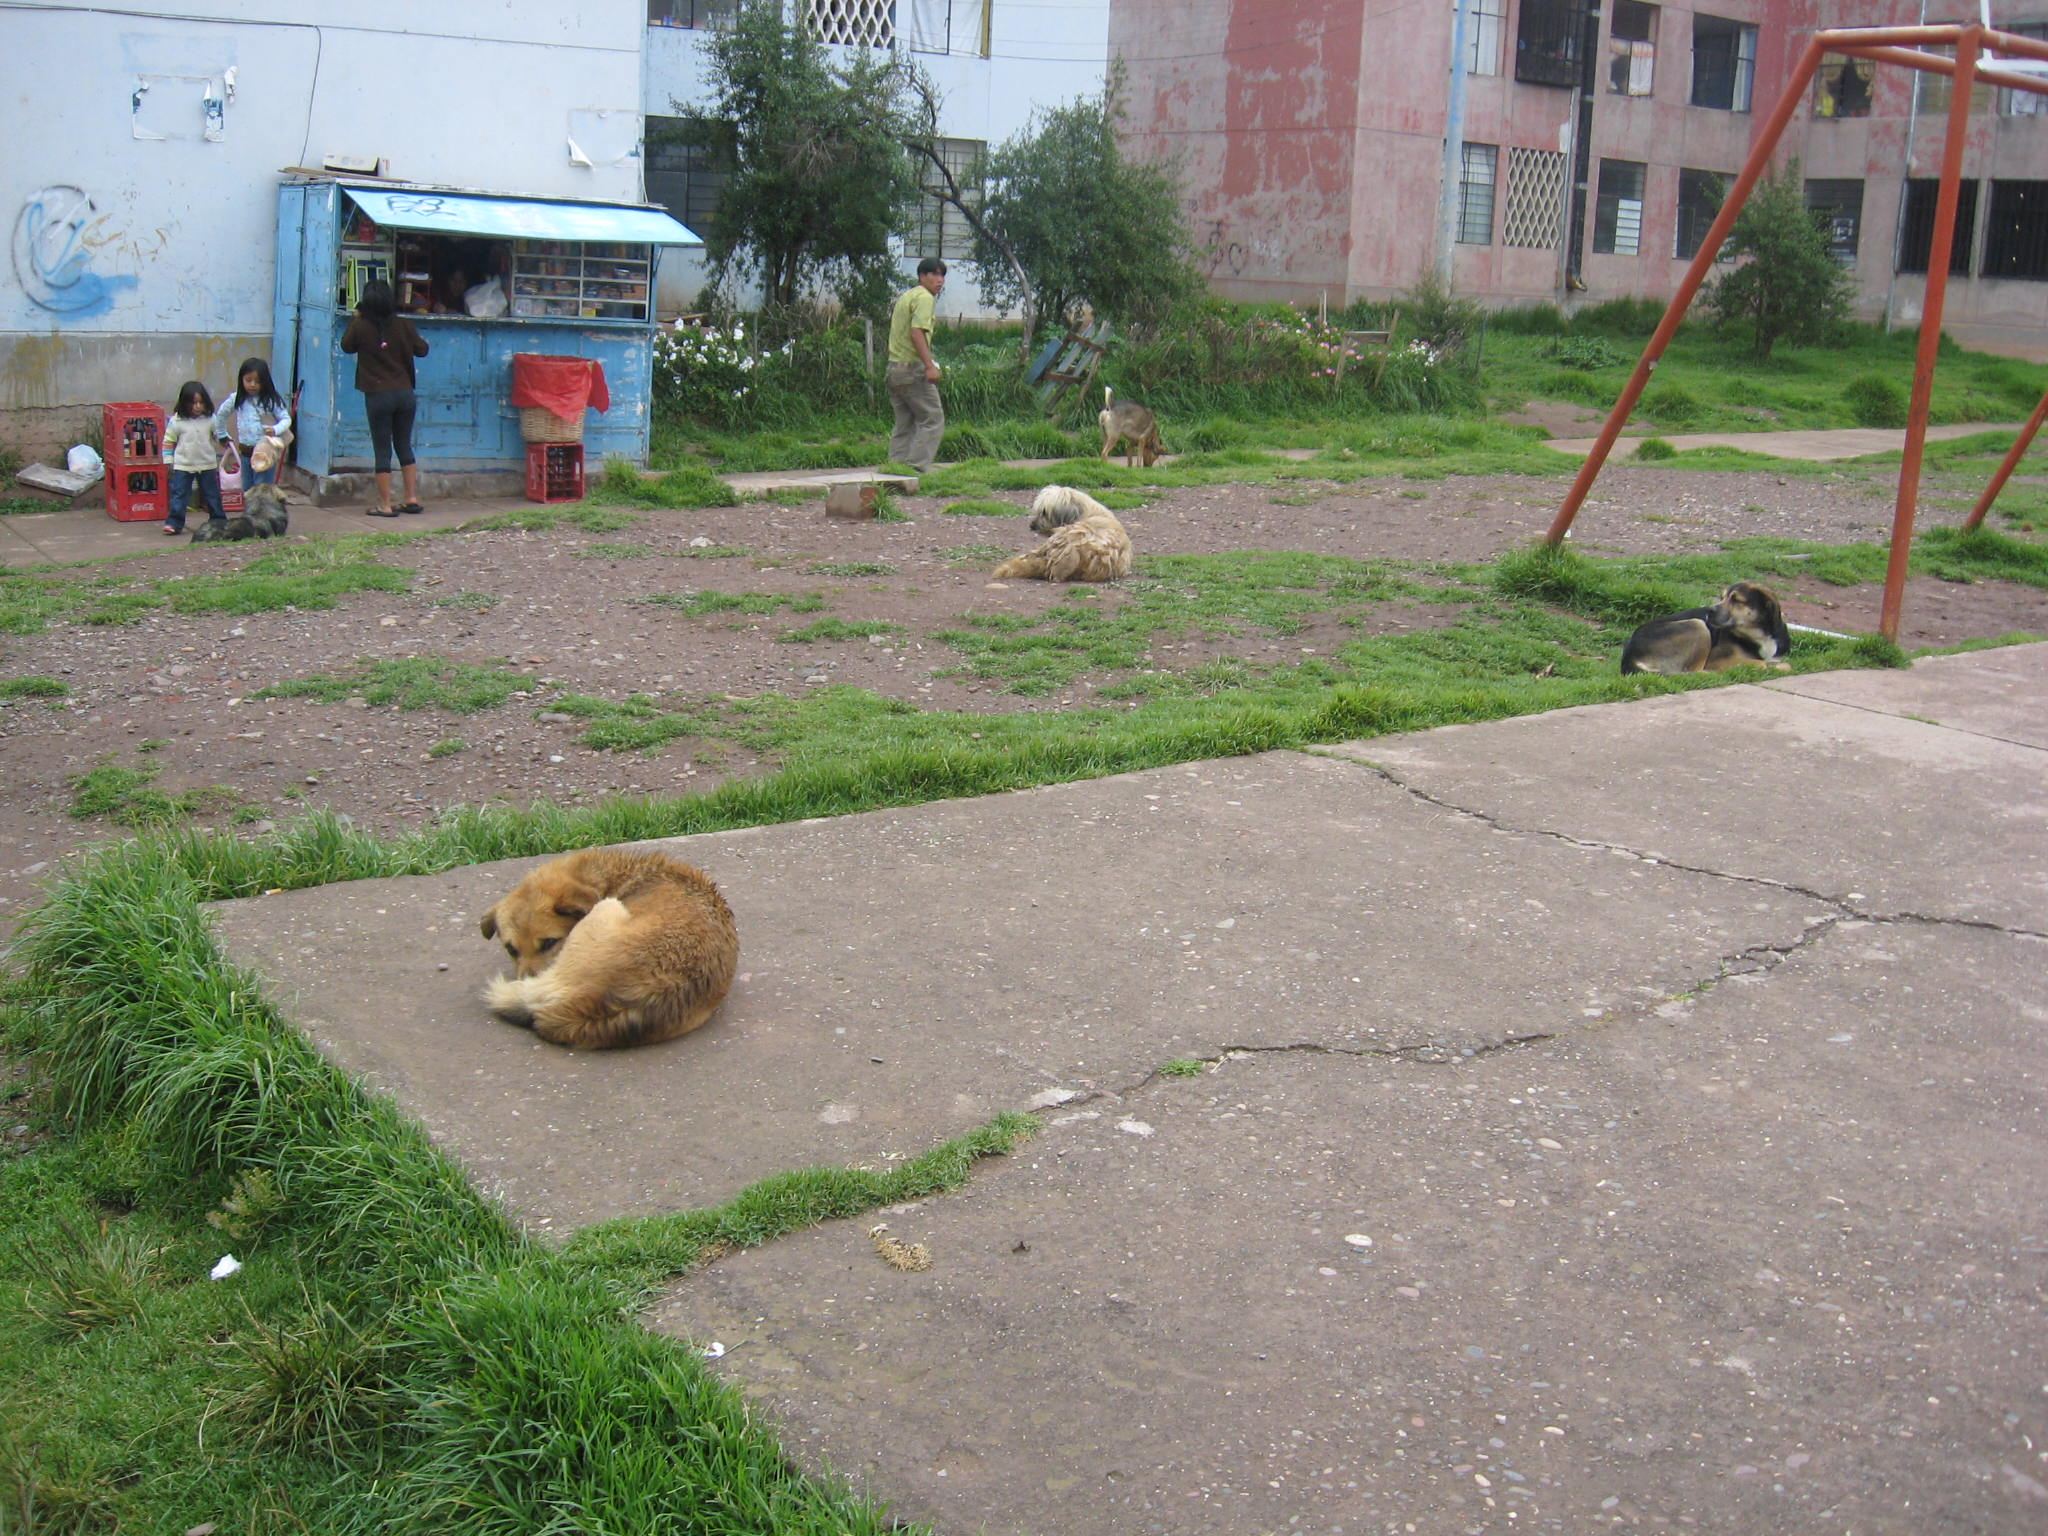 Stray dogs hanging around the park.